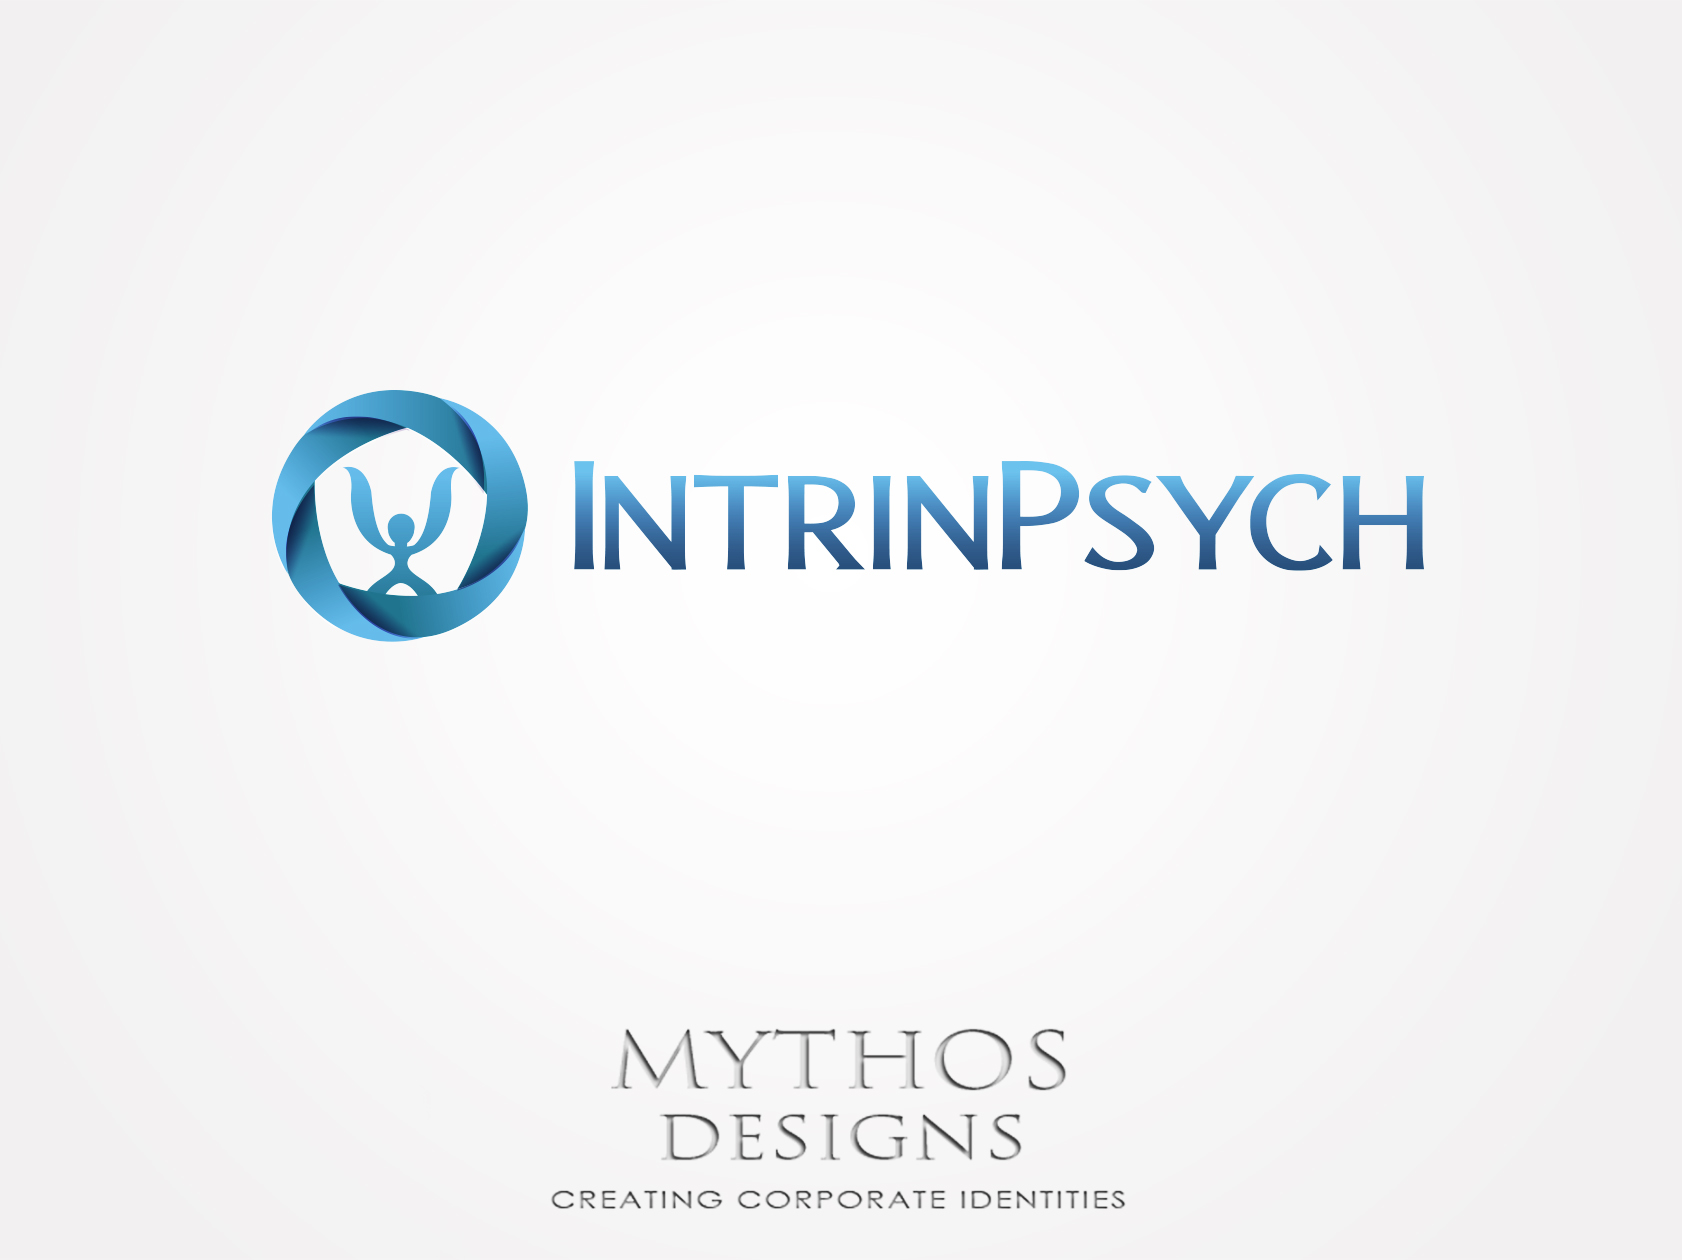 Logo Design by Mythos Designs - Entry No. 211 in the Logo Design Contest New Logo Design for IntrinPsych.